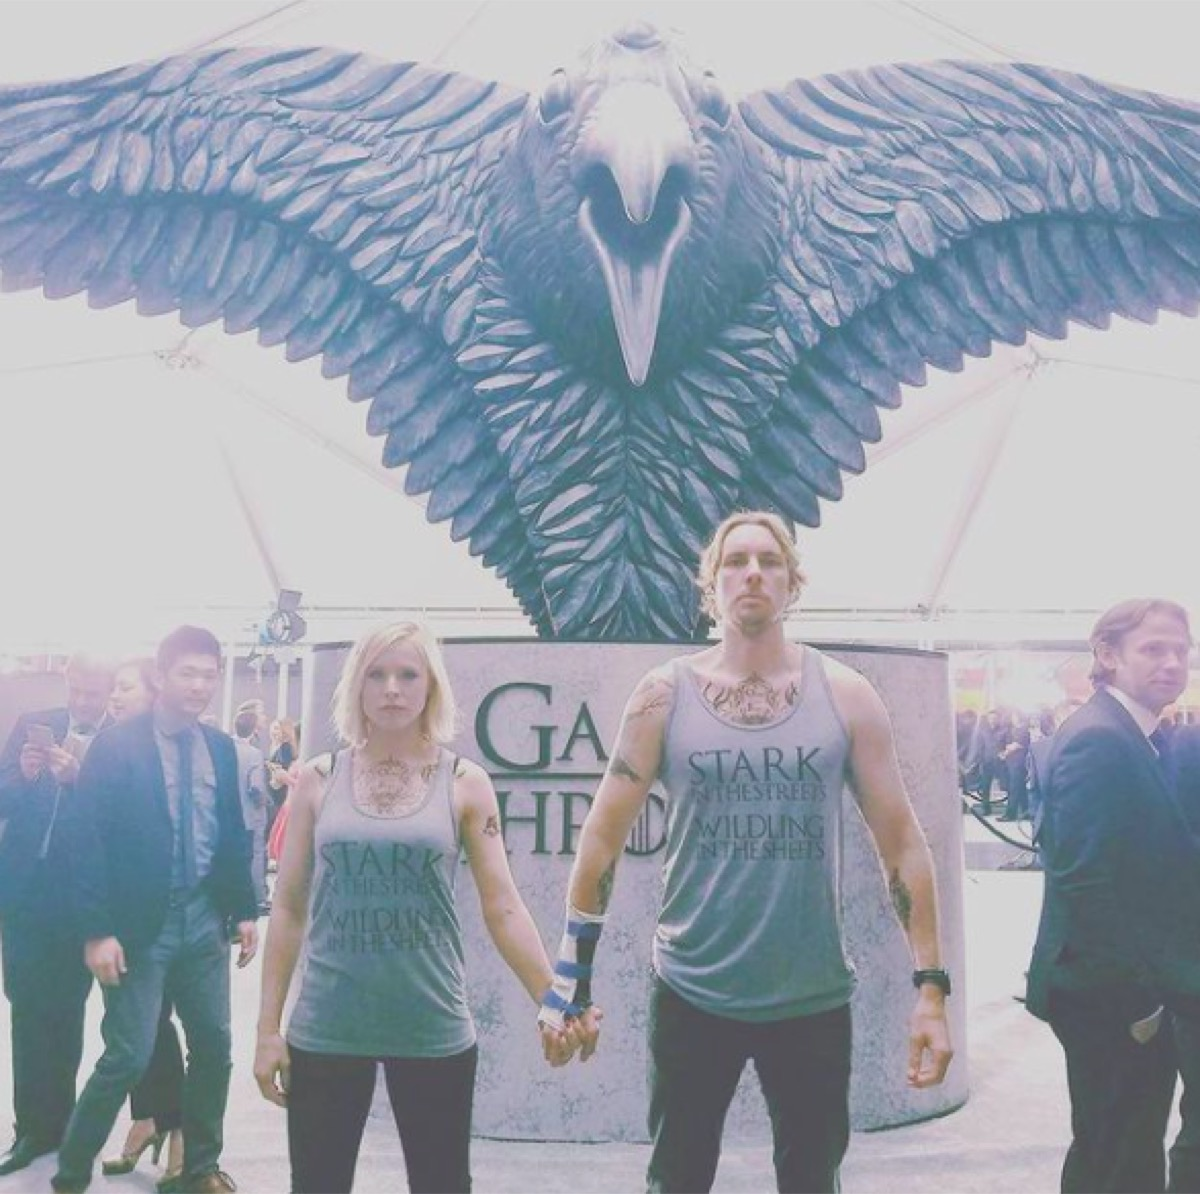 """Kristen Bell and Dax Shepard at """"Game of Thrones"""" premiere"""